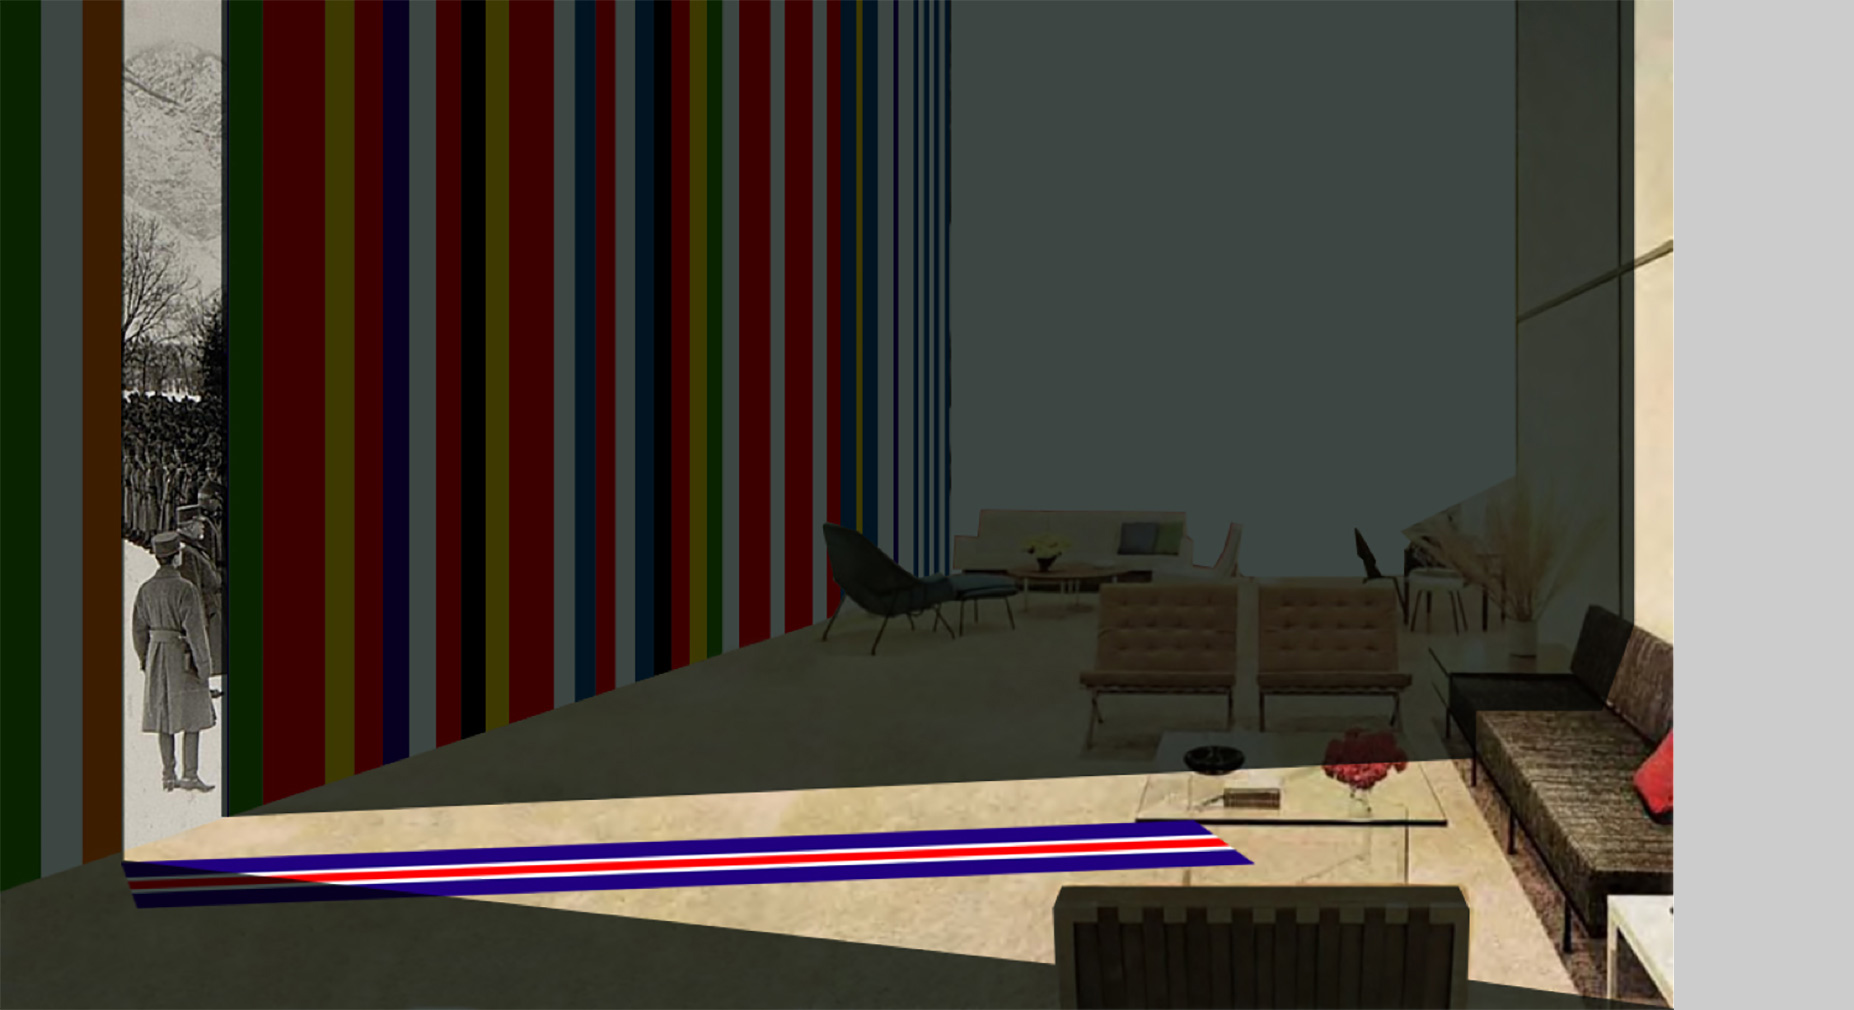 Pan-European Living Room installation sketch by OMA